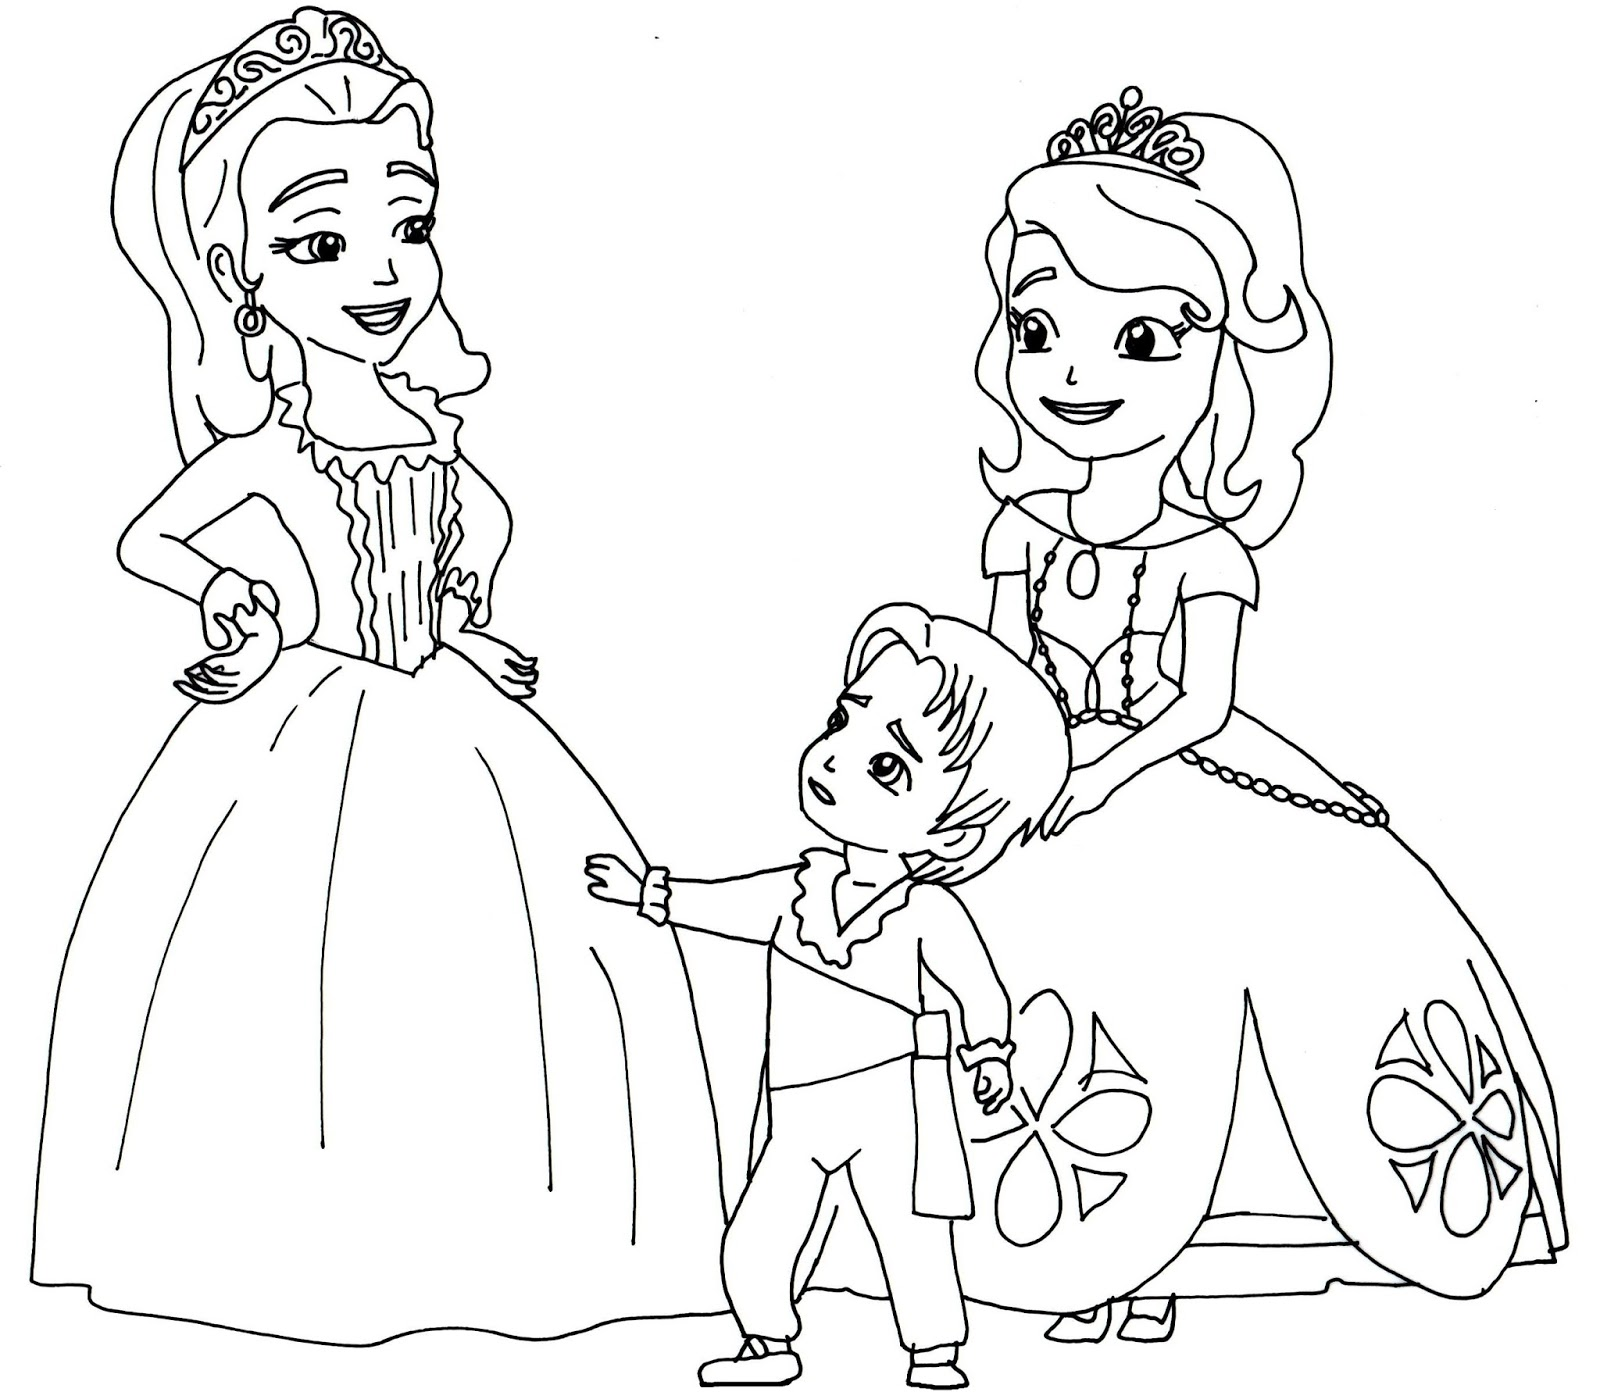 sofia the first coloring pages two princesses and a baby sofia